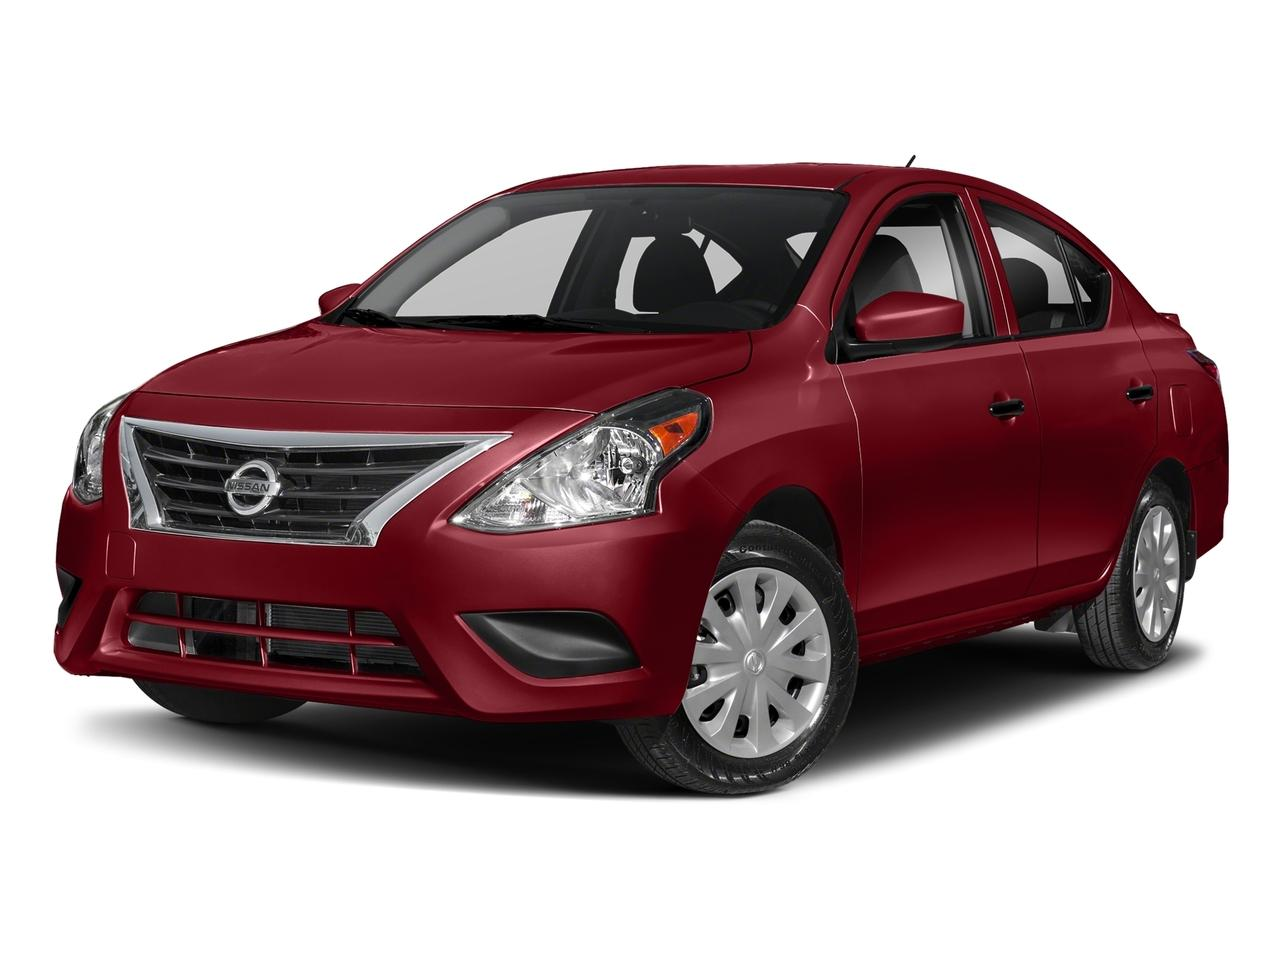 2018 Nissan Versa Sedan Vehicle Photo in Spokane, WA 99207